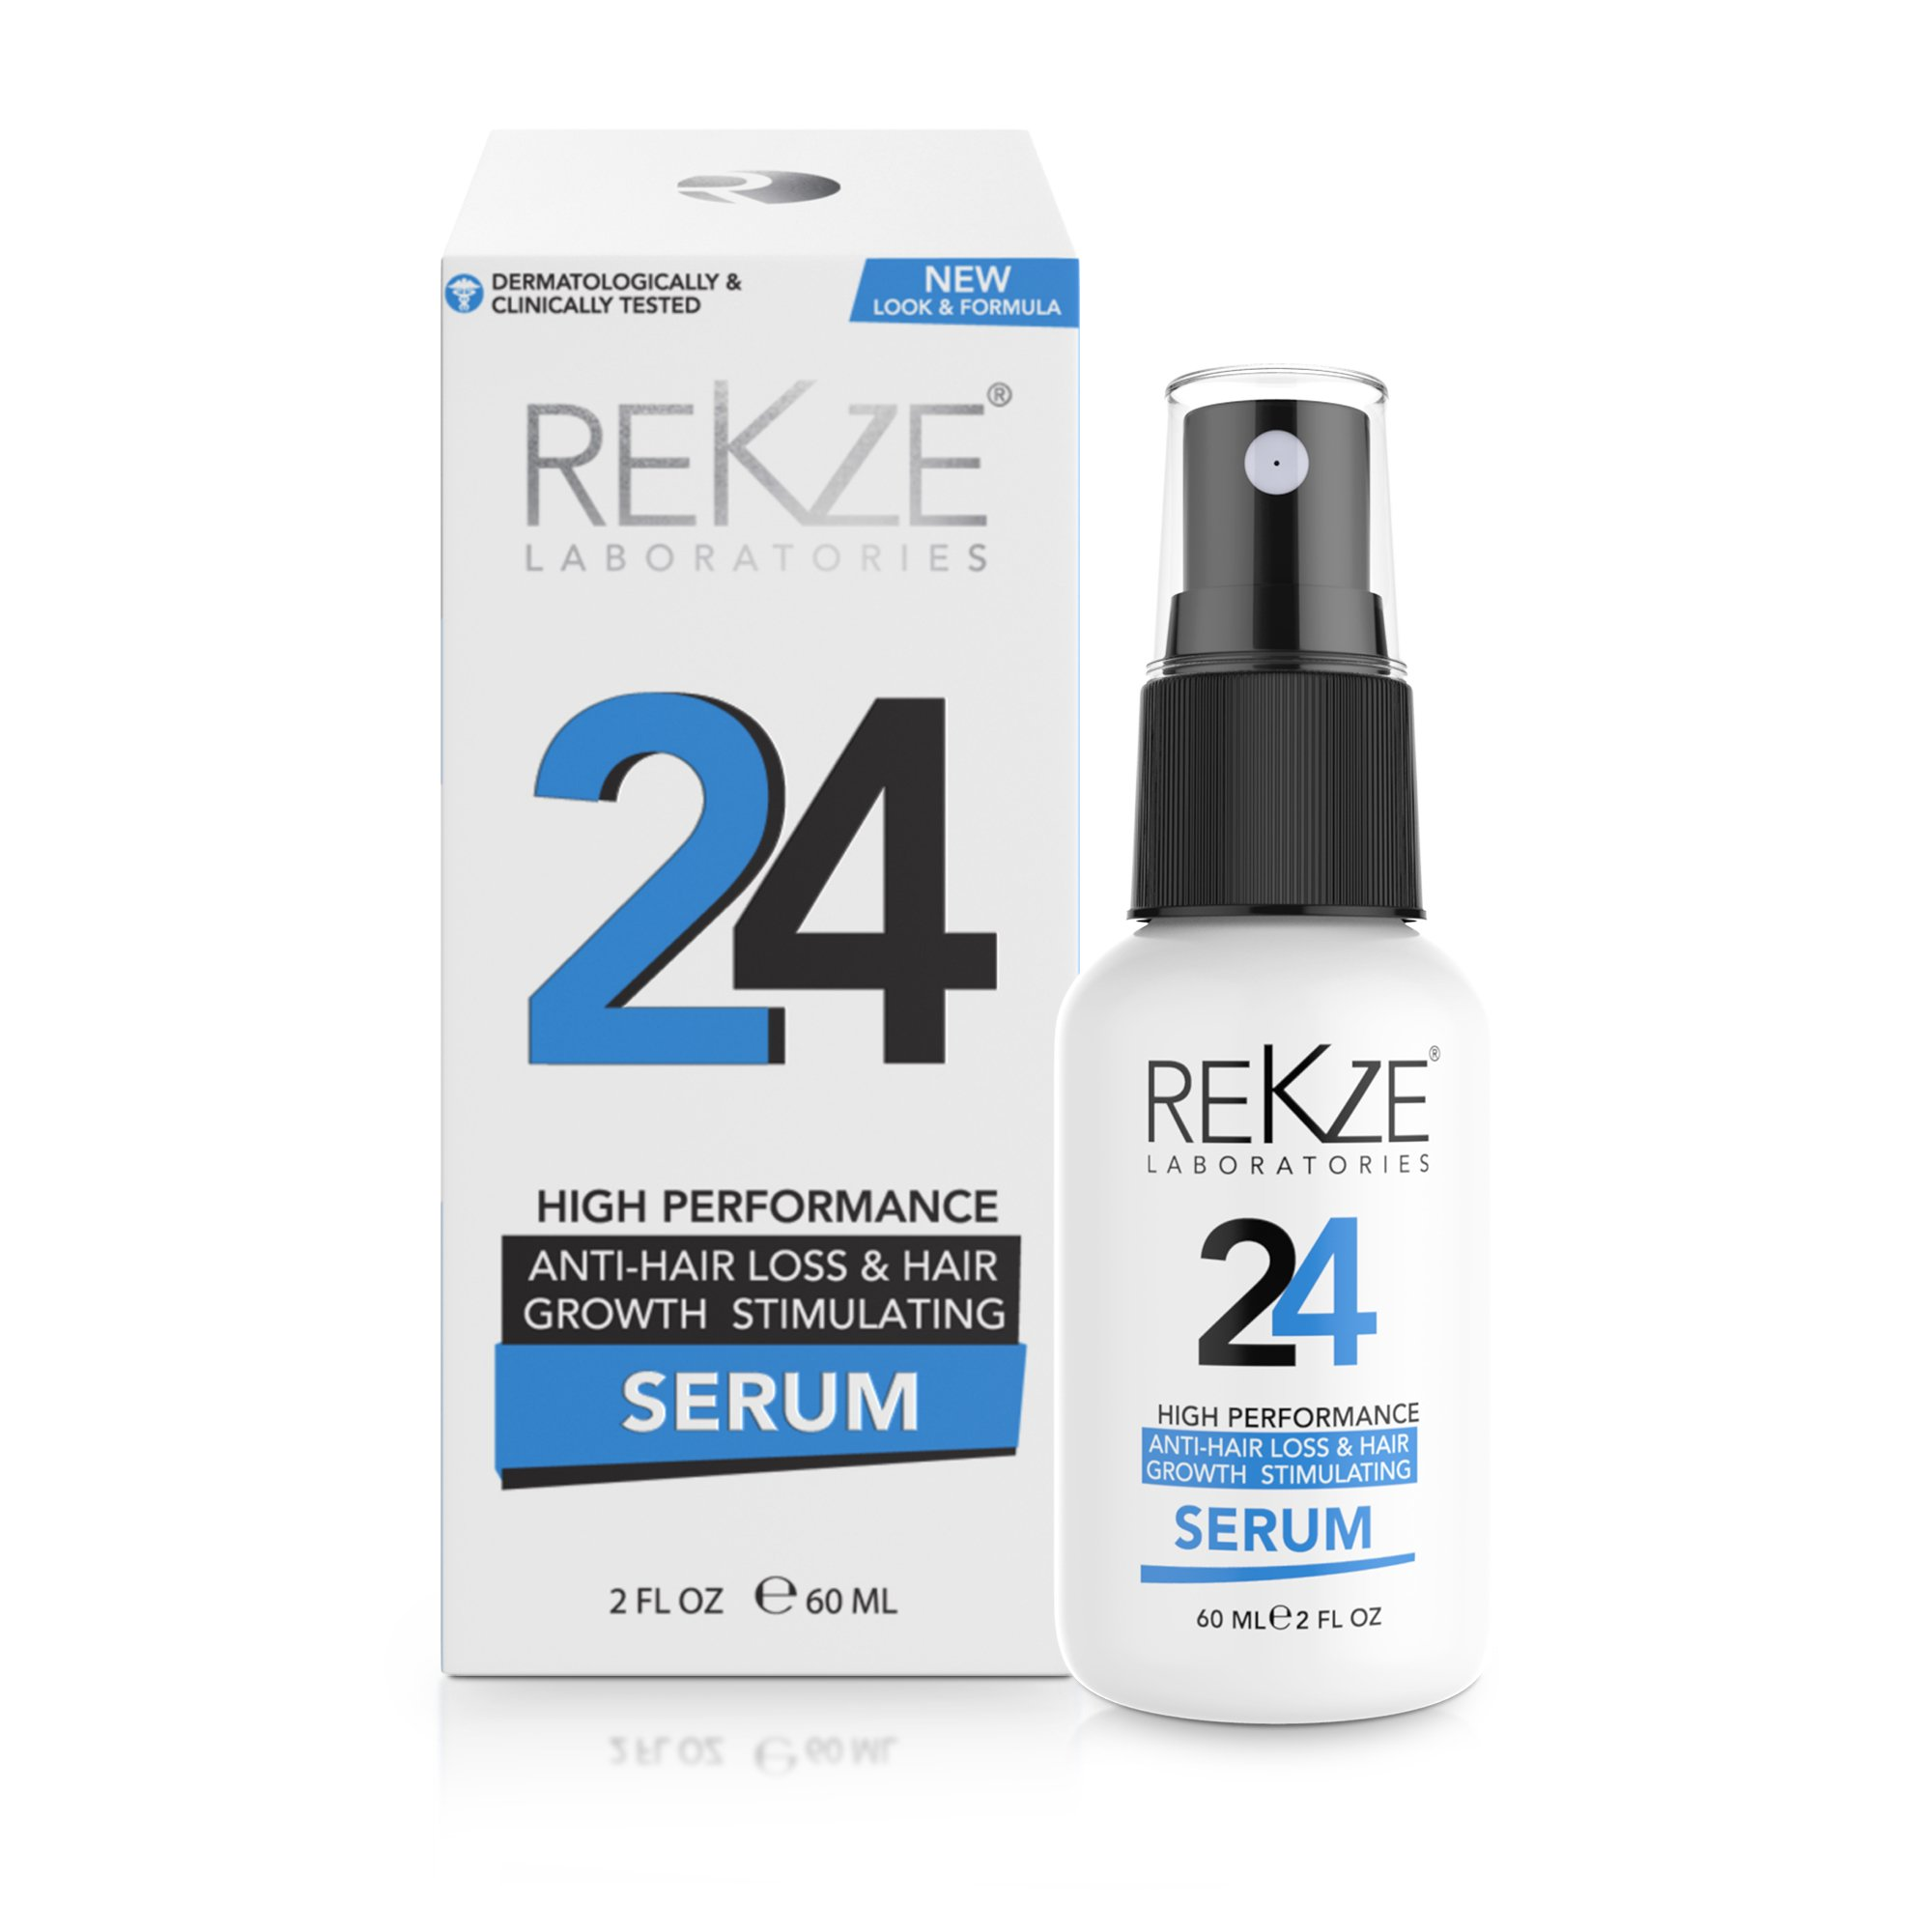 REKZE 24 Hair Growth Serum & Anti-Hair Loss Treatment Clinically Proven For Men & Women, For Thinning Hair, Thickening & Regrowth, Strong DHT Blocker With Procapil, Keratin, Collagen, Astressin-B